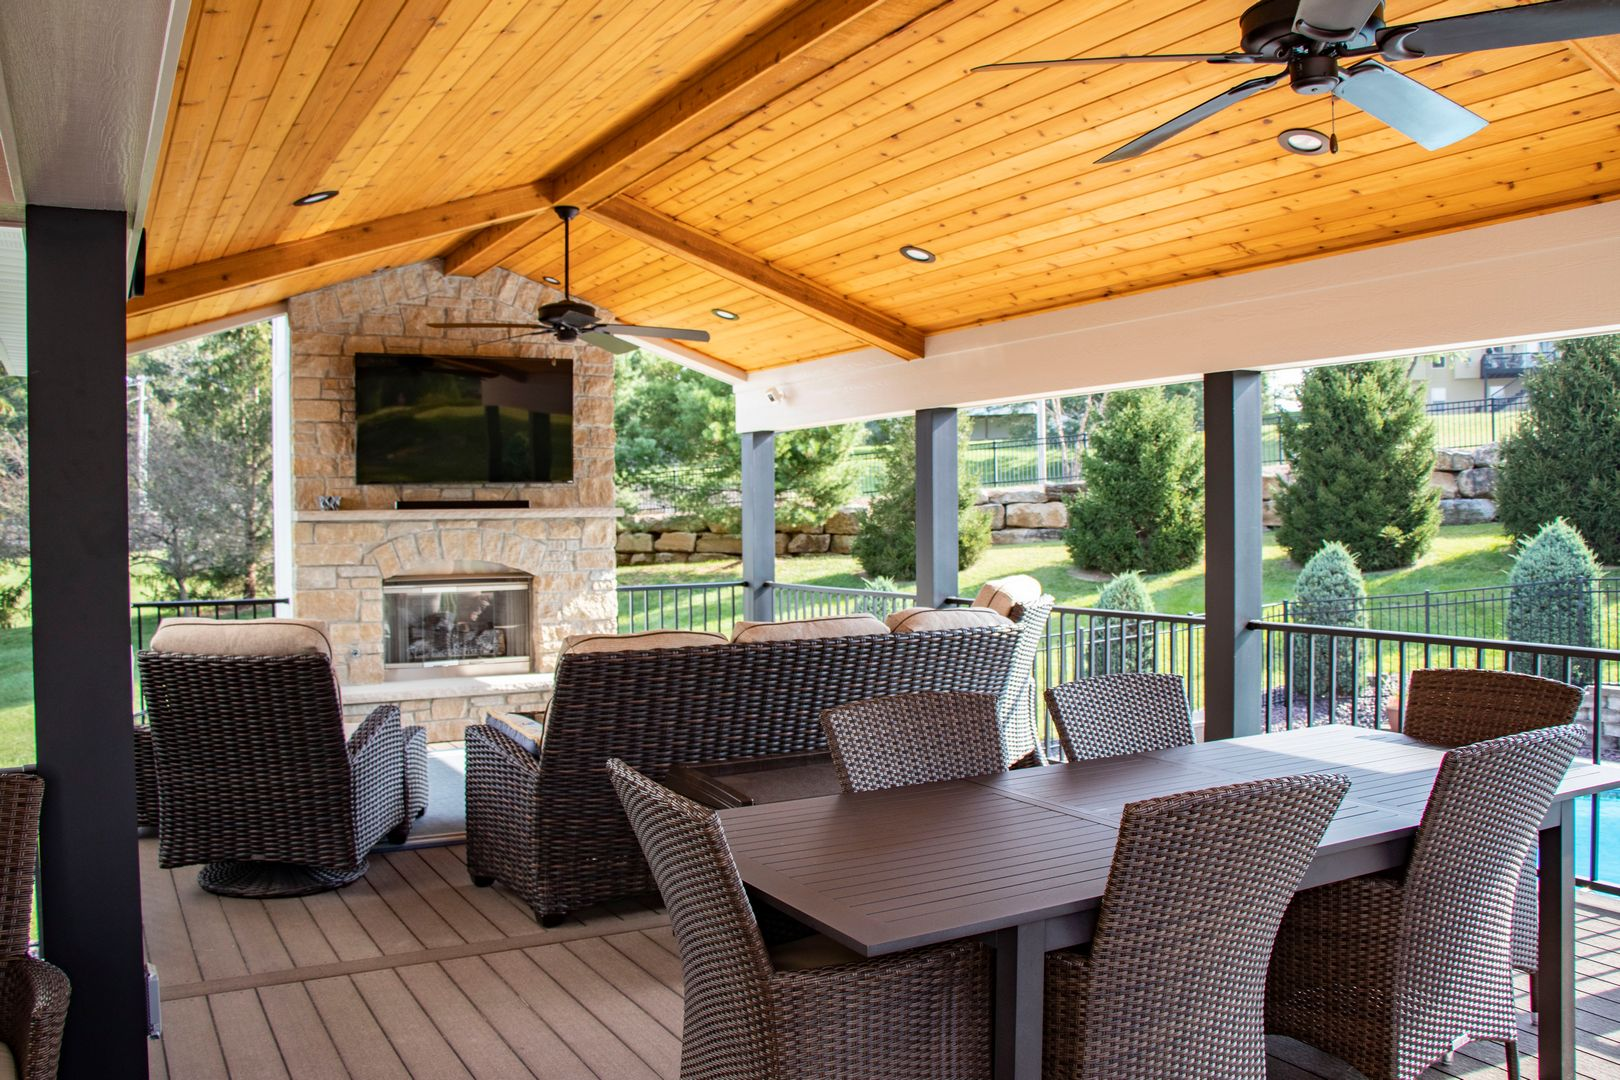 adding outdoor dining spaces next to a fireplace can help increase comfort during cooler seasons